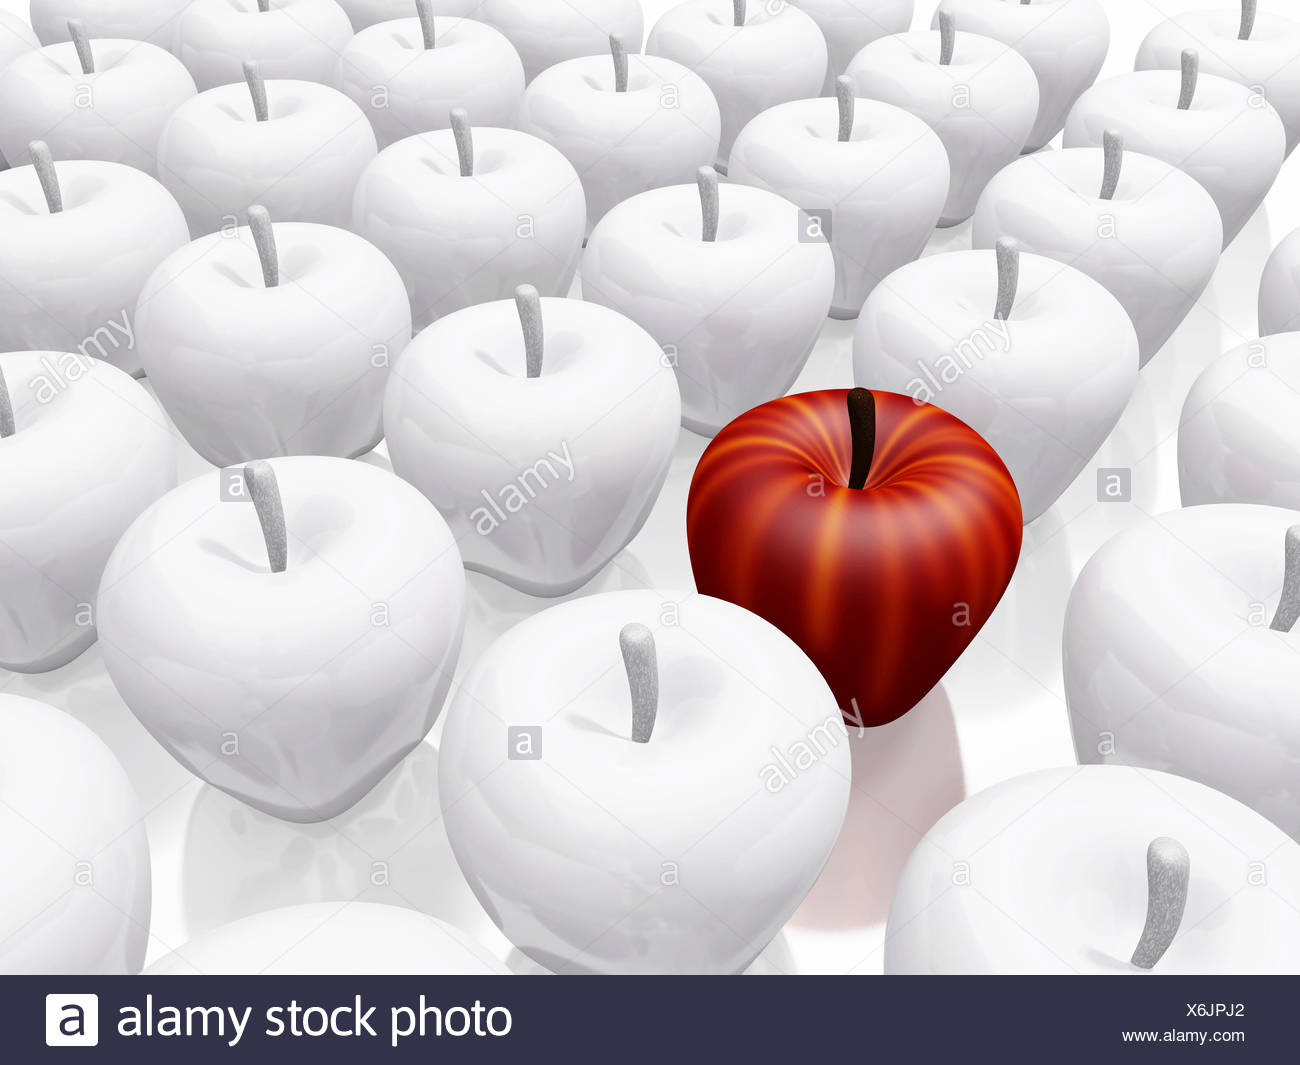 One Red Apple Amidst White Ceramic Apples Stock Photo